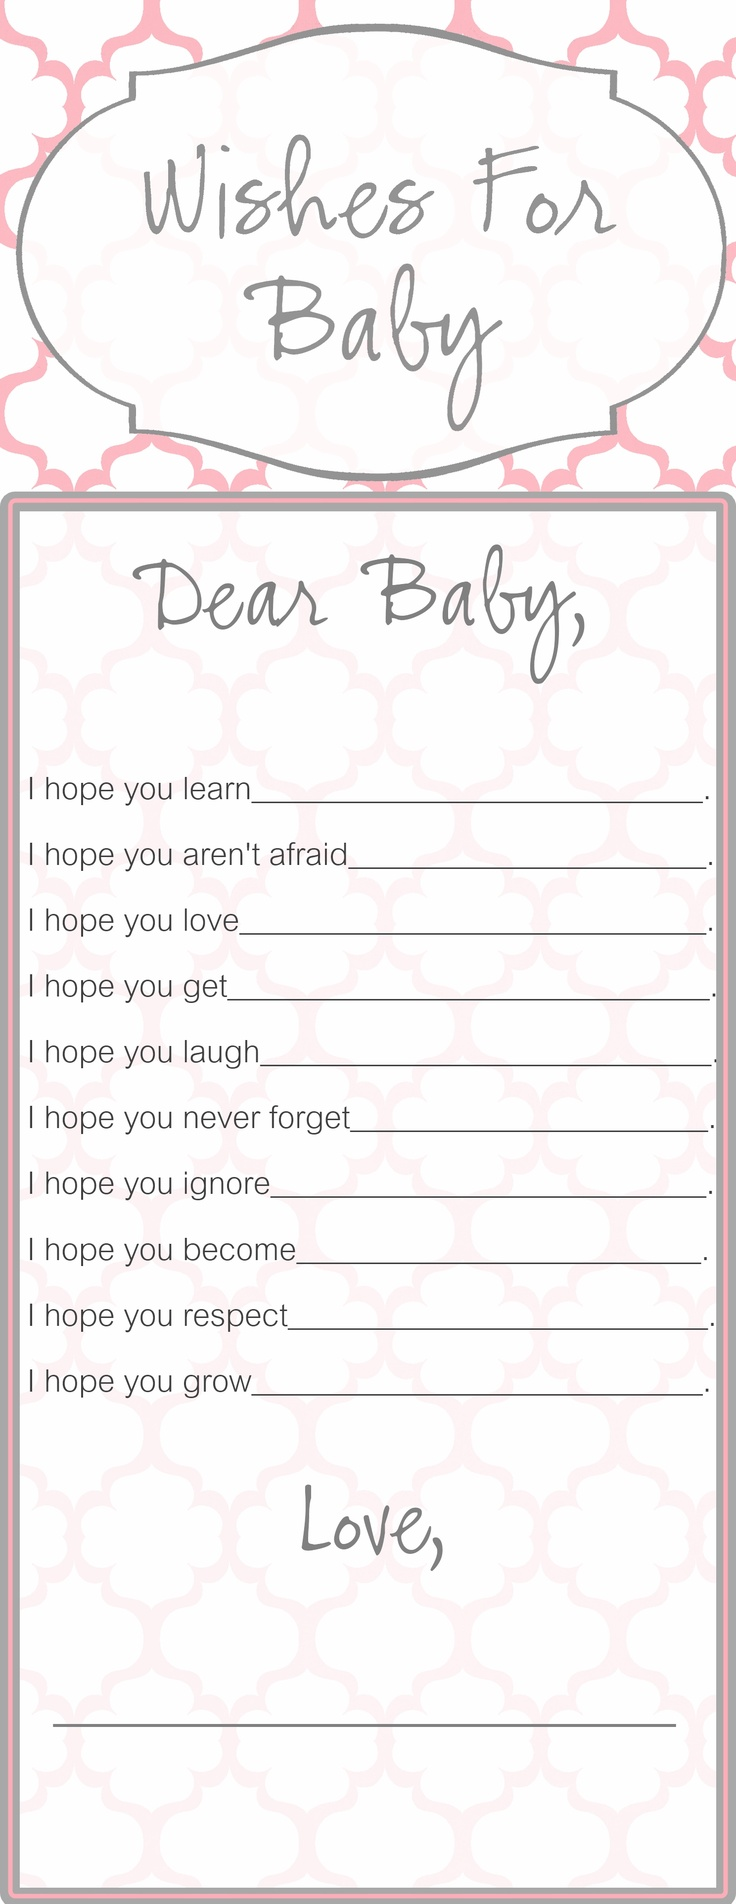 Wishes for Baby template that I created for a baby shower that my SIL is going to! I'm so excited about it.. haha